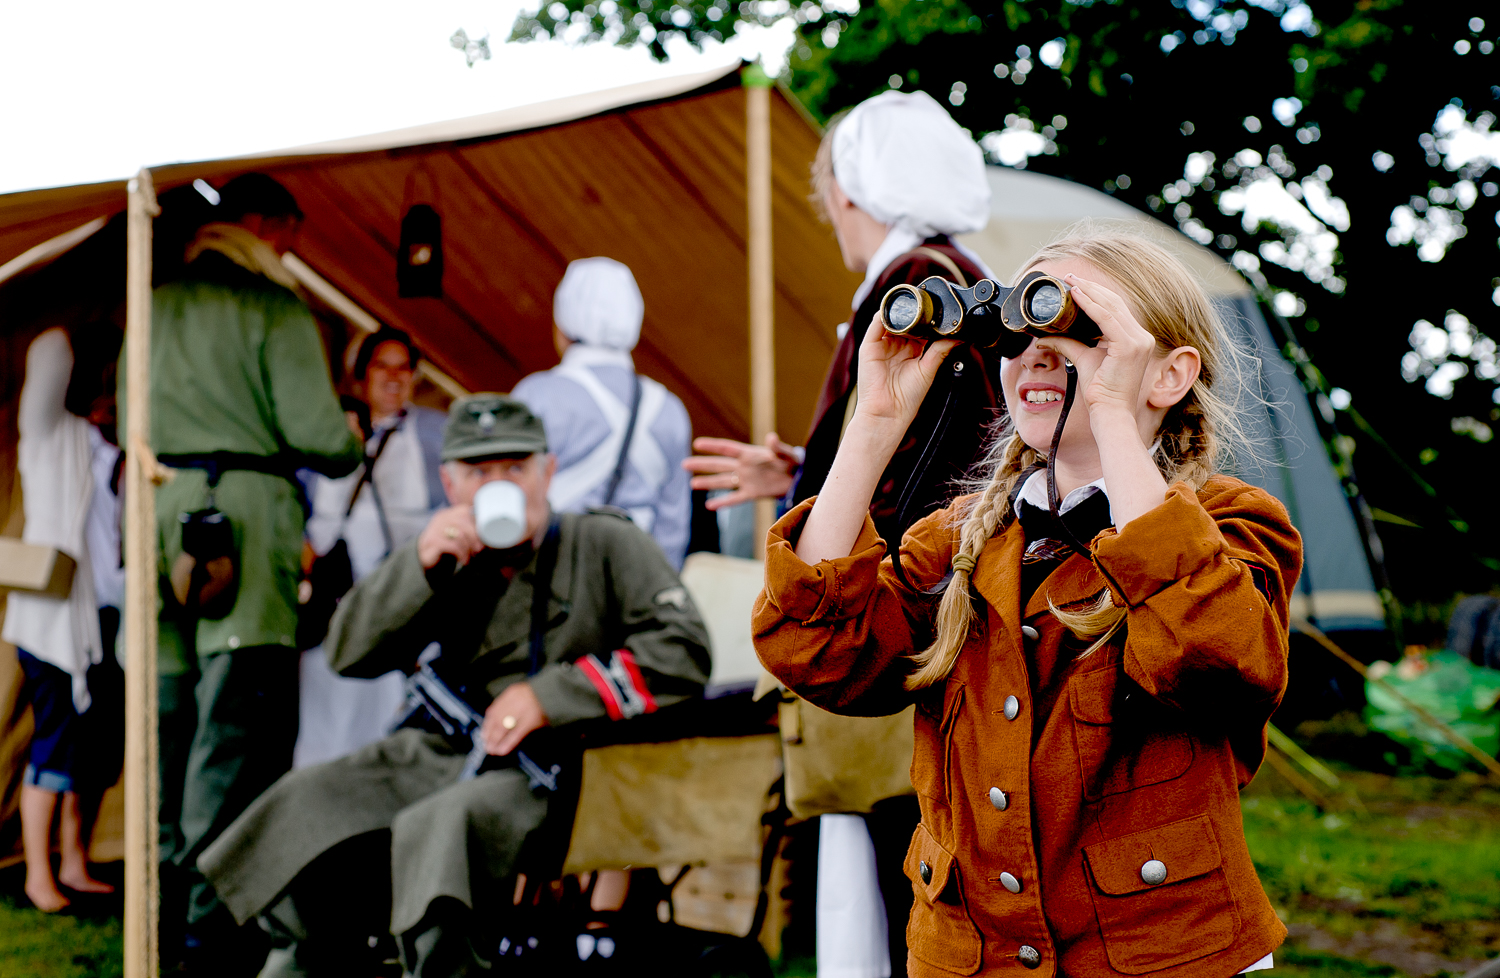 Young re-enactor following planes participating in an airshow at War and Peace show, Kent